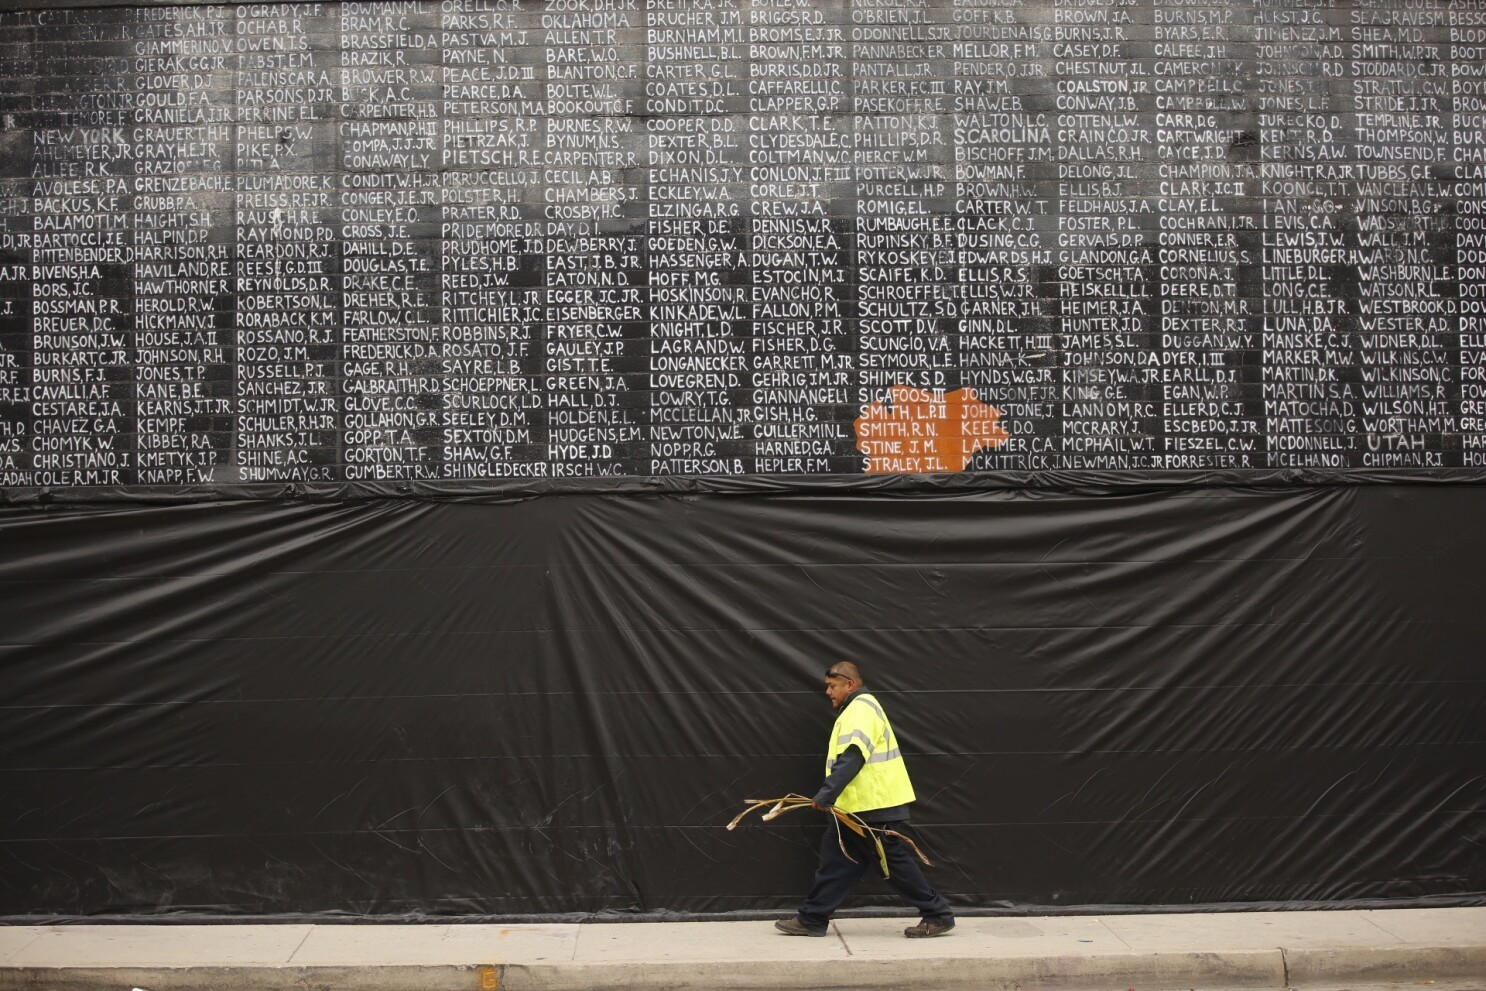 Man Who Vandalized Vietnam War Memorial In Venice Sentenced To 4 Years In Prison Los Angeles Times